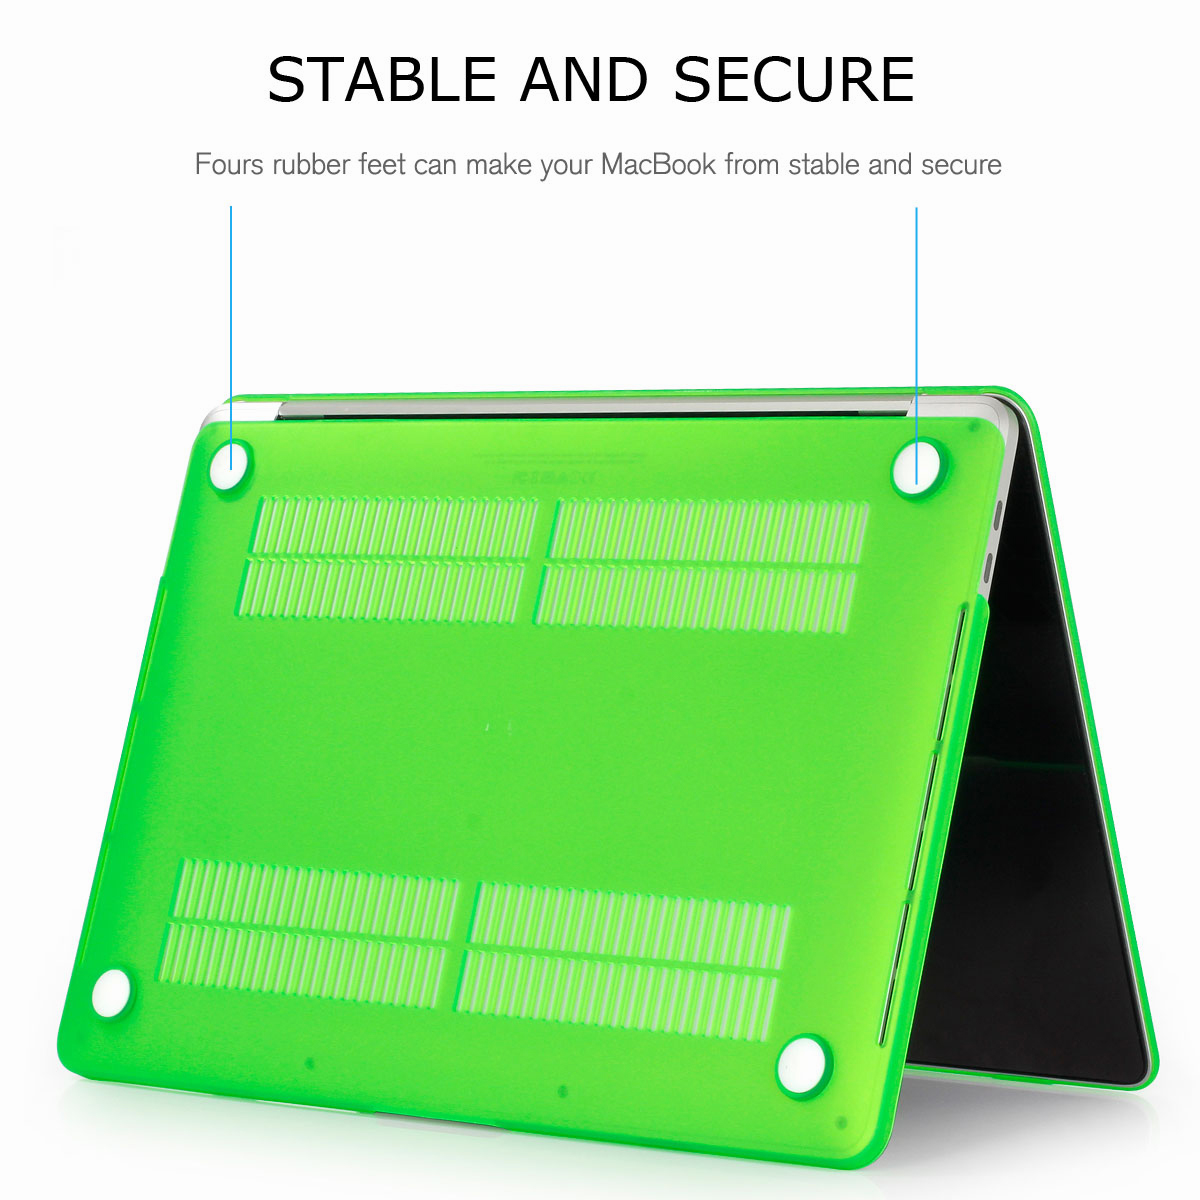 Shockproof-Rubberized-Matte-Hard-Case-Cover-For-Macbook-13-034-15-034-Inch-A1286-A1278 thumbnail 23